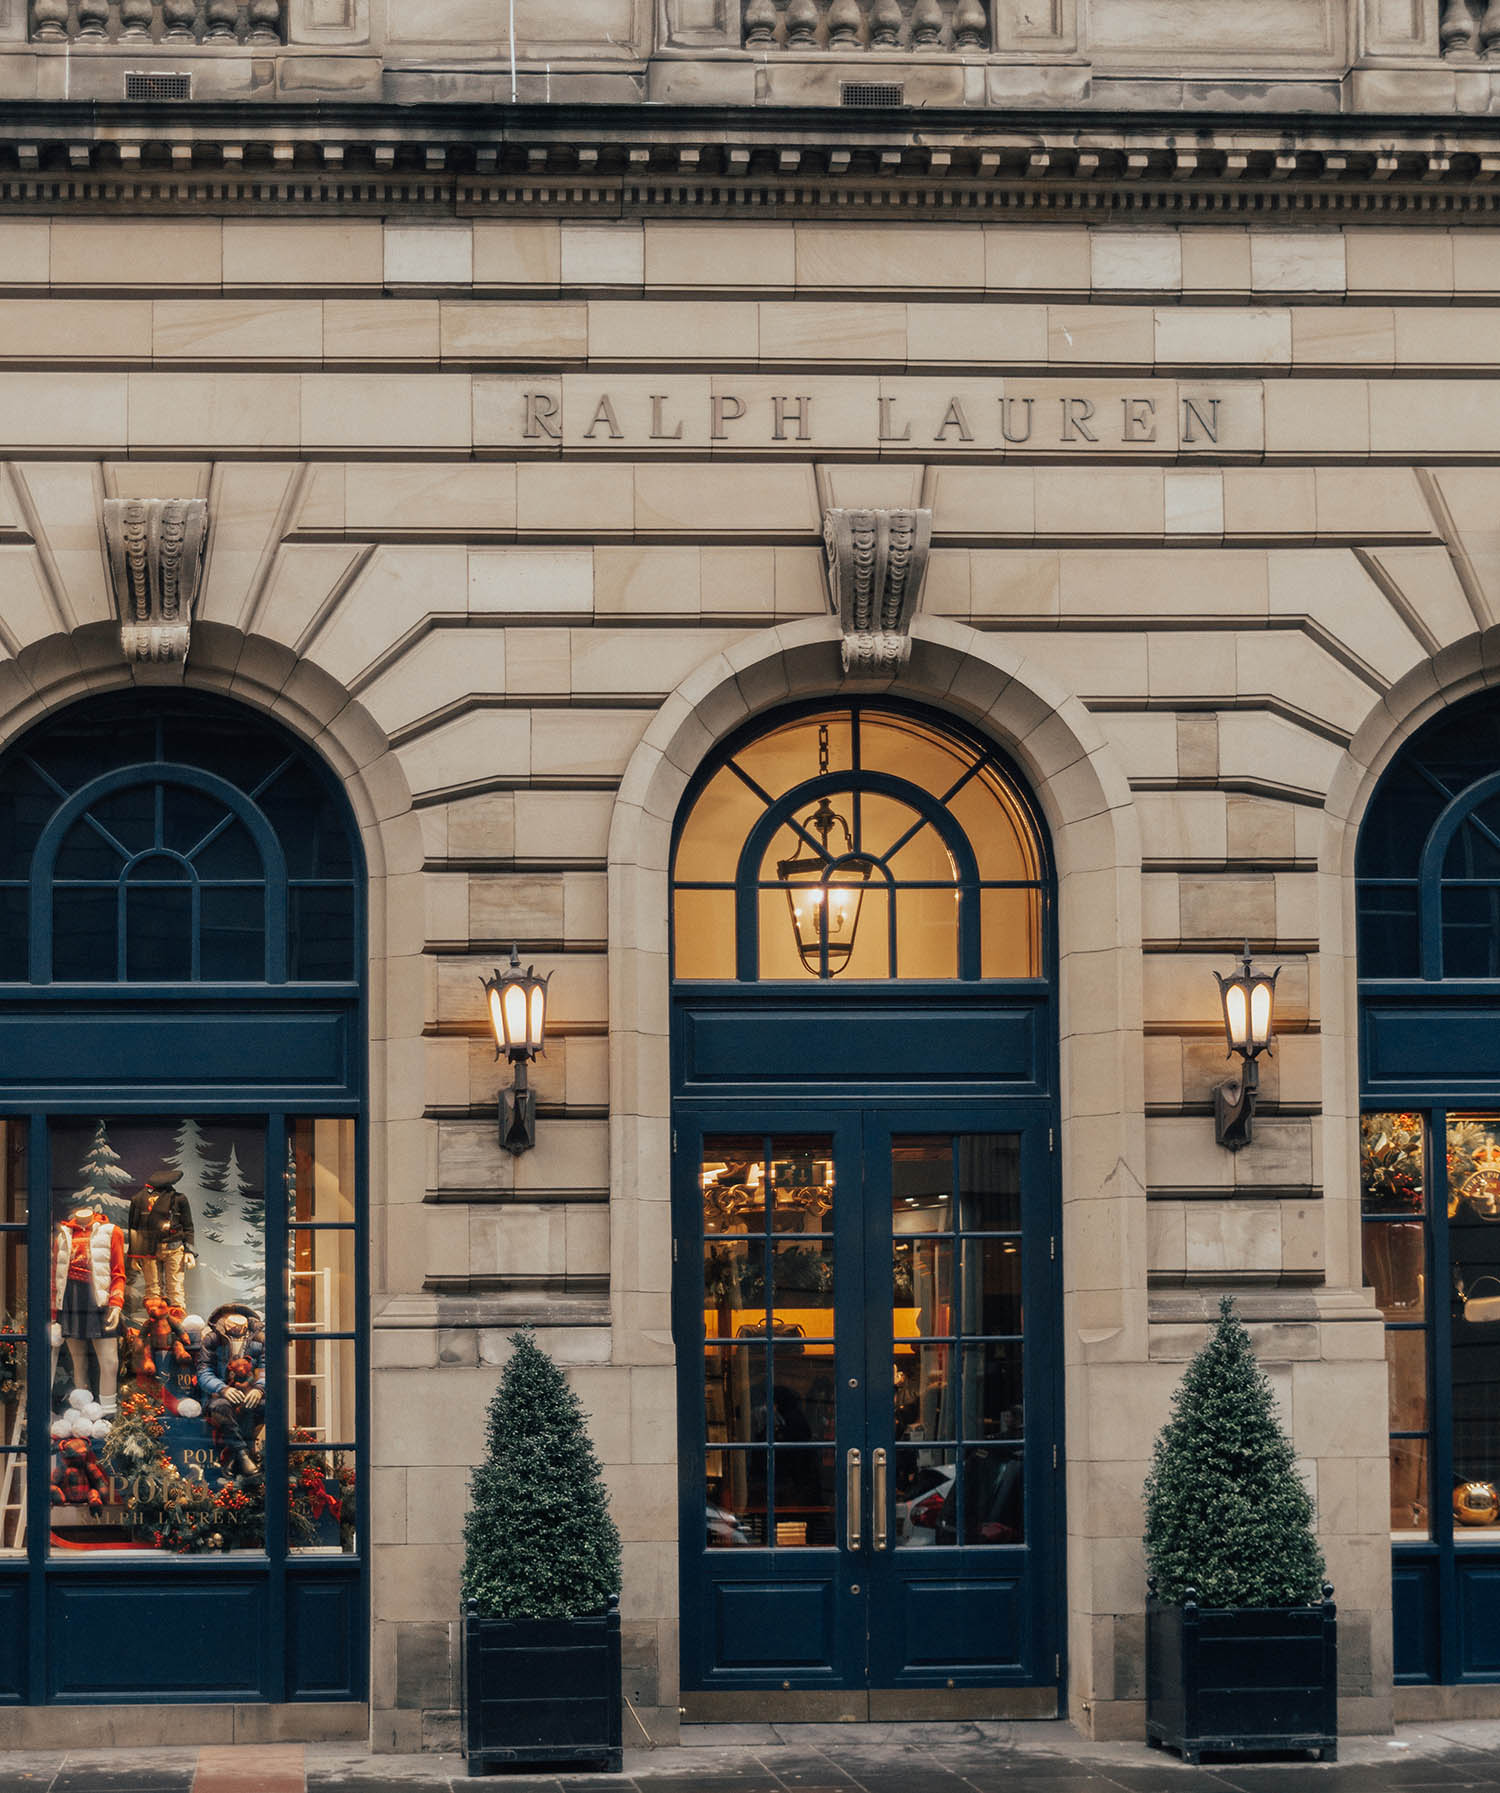 Ralph Lauren Store Front in Glasgow